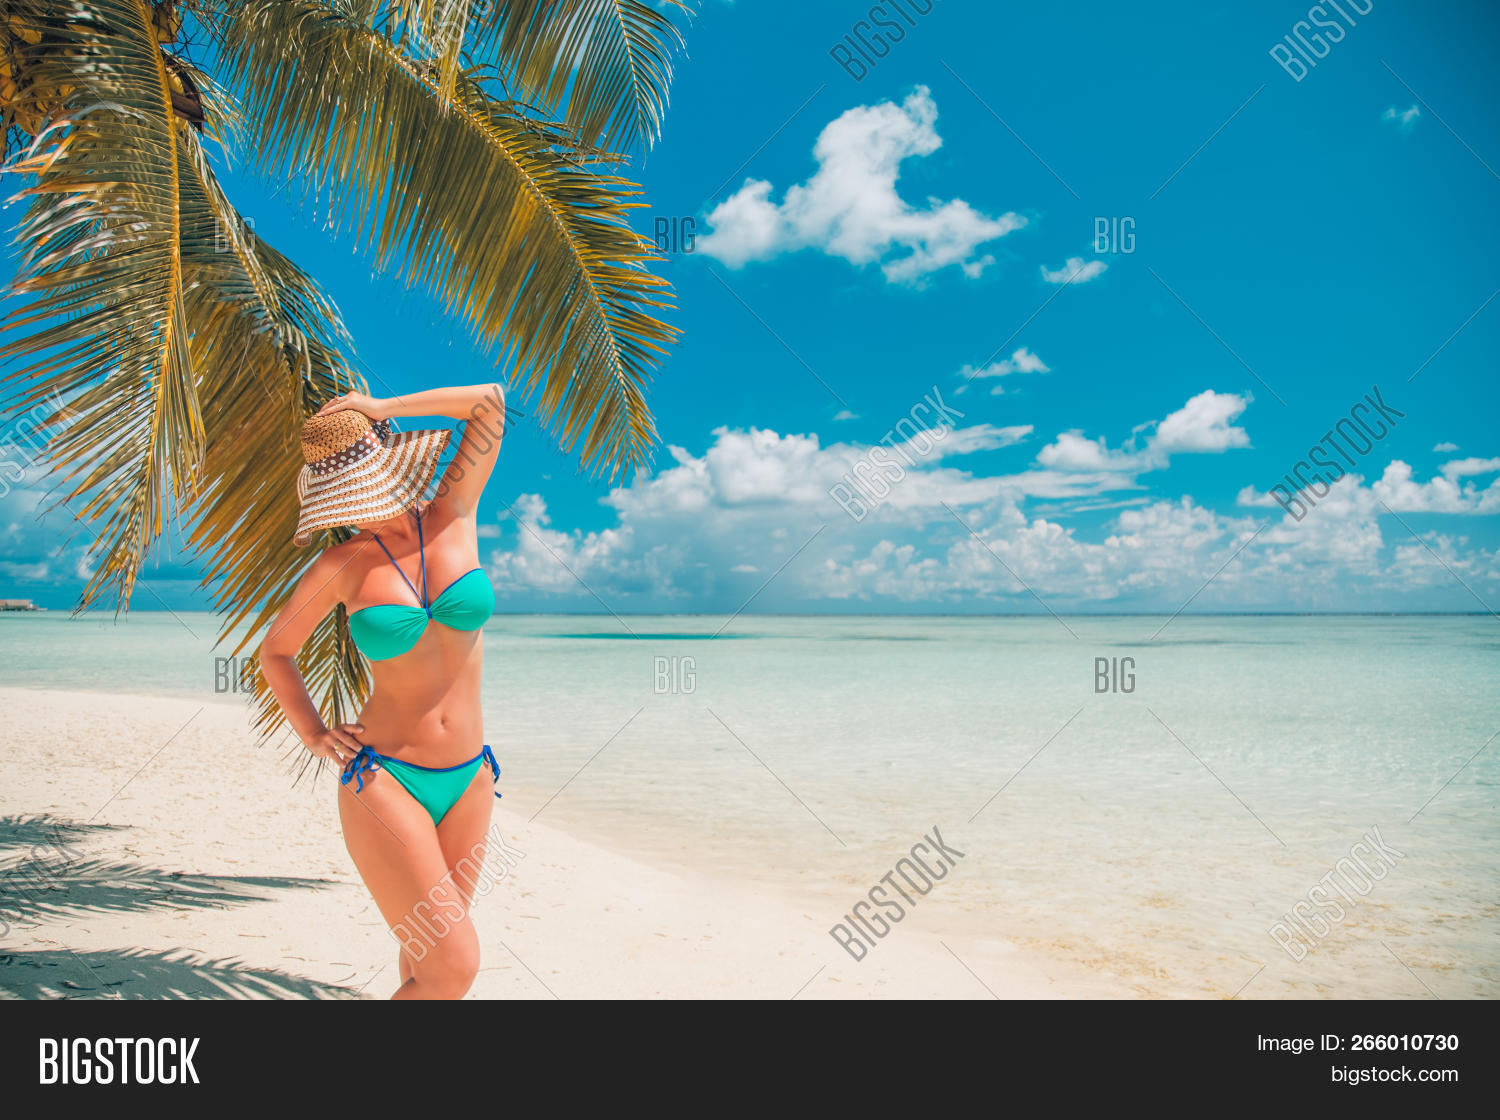 active,adult,attractive,beach,beautiful,beauty,blue,body,carefree,caucasian,coast,couple,female,freedom,fun,girl,happiness,happy,health,healthy,holiday,joy,leisure,lifestyle,love,man,nature,ocean,outdoors,people,person,relax,relaxation,sand,sea,sky,summer,sun,sunlight,sunny,sunset,together,travel,tropical,vacation,water,wellness,white,woman,young